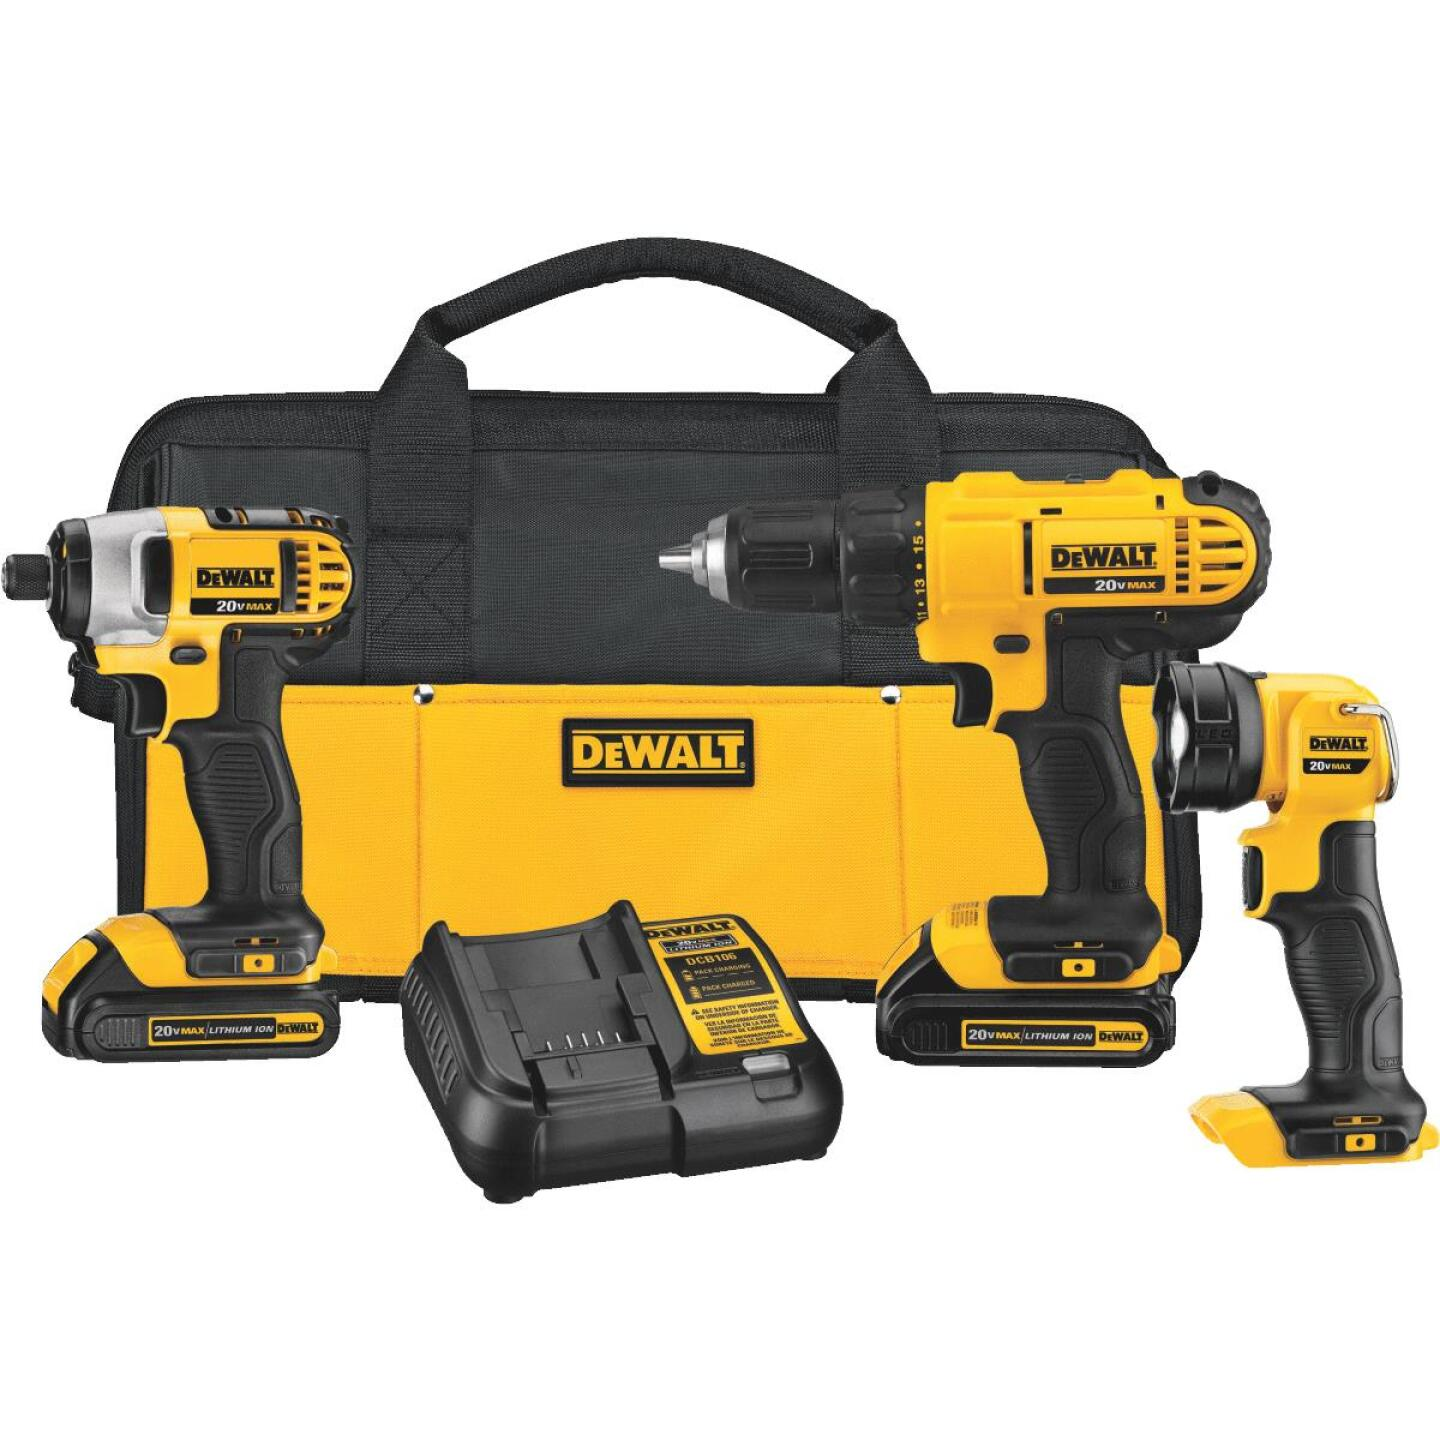 DeWalt 3-Tool 20V MAX Lithium-Ion Drill/Driver, Impact Driver & Work Light Cordless Tool Combo Kit Image 1